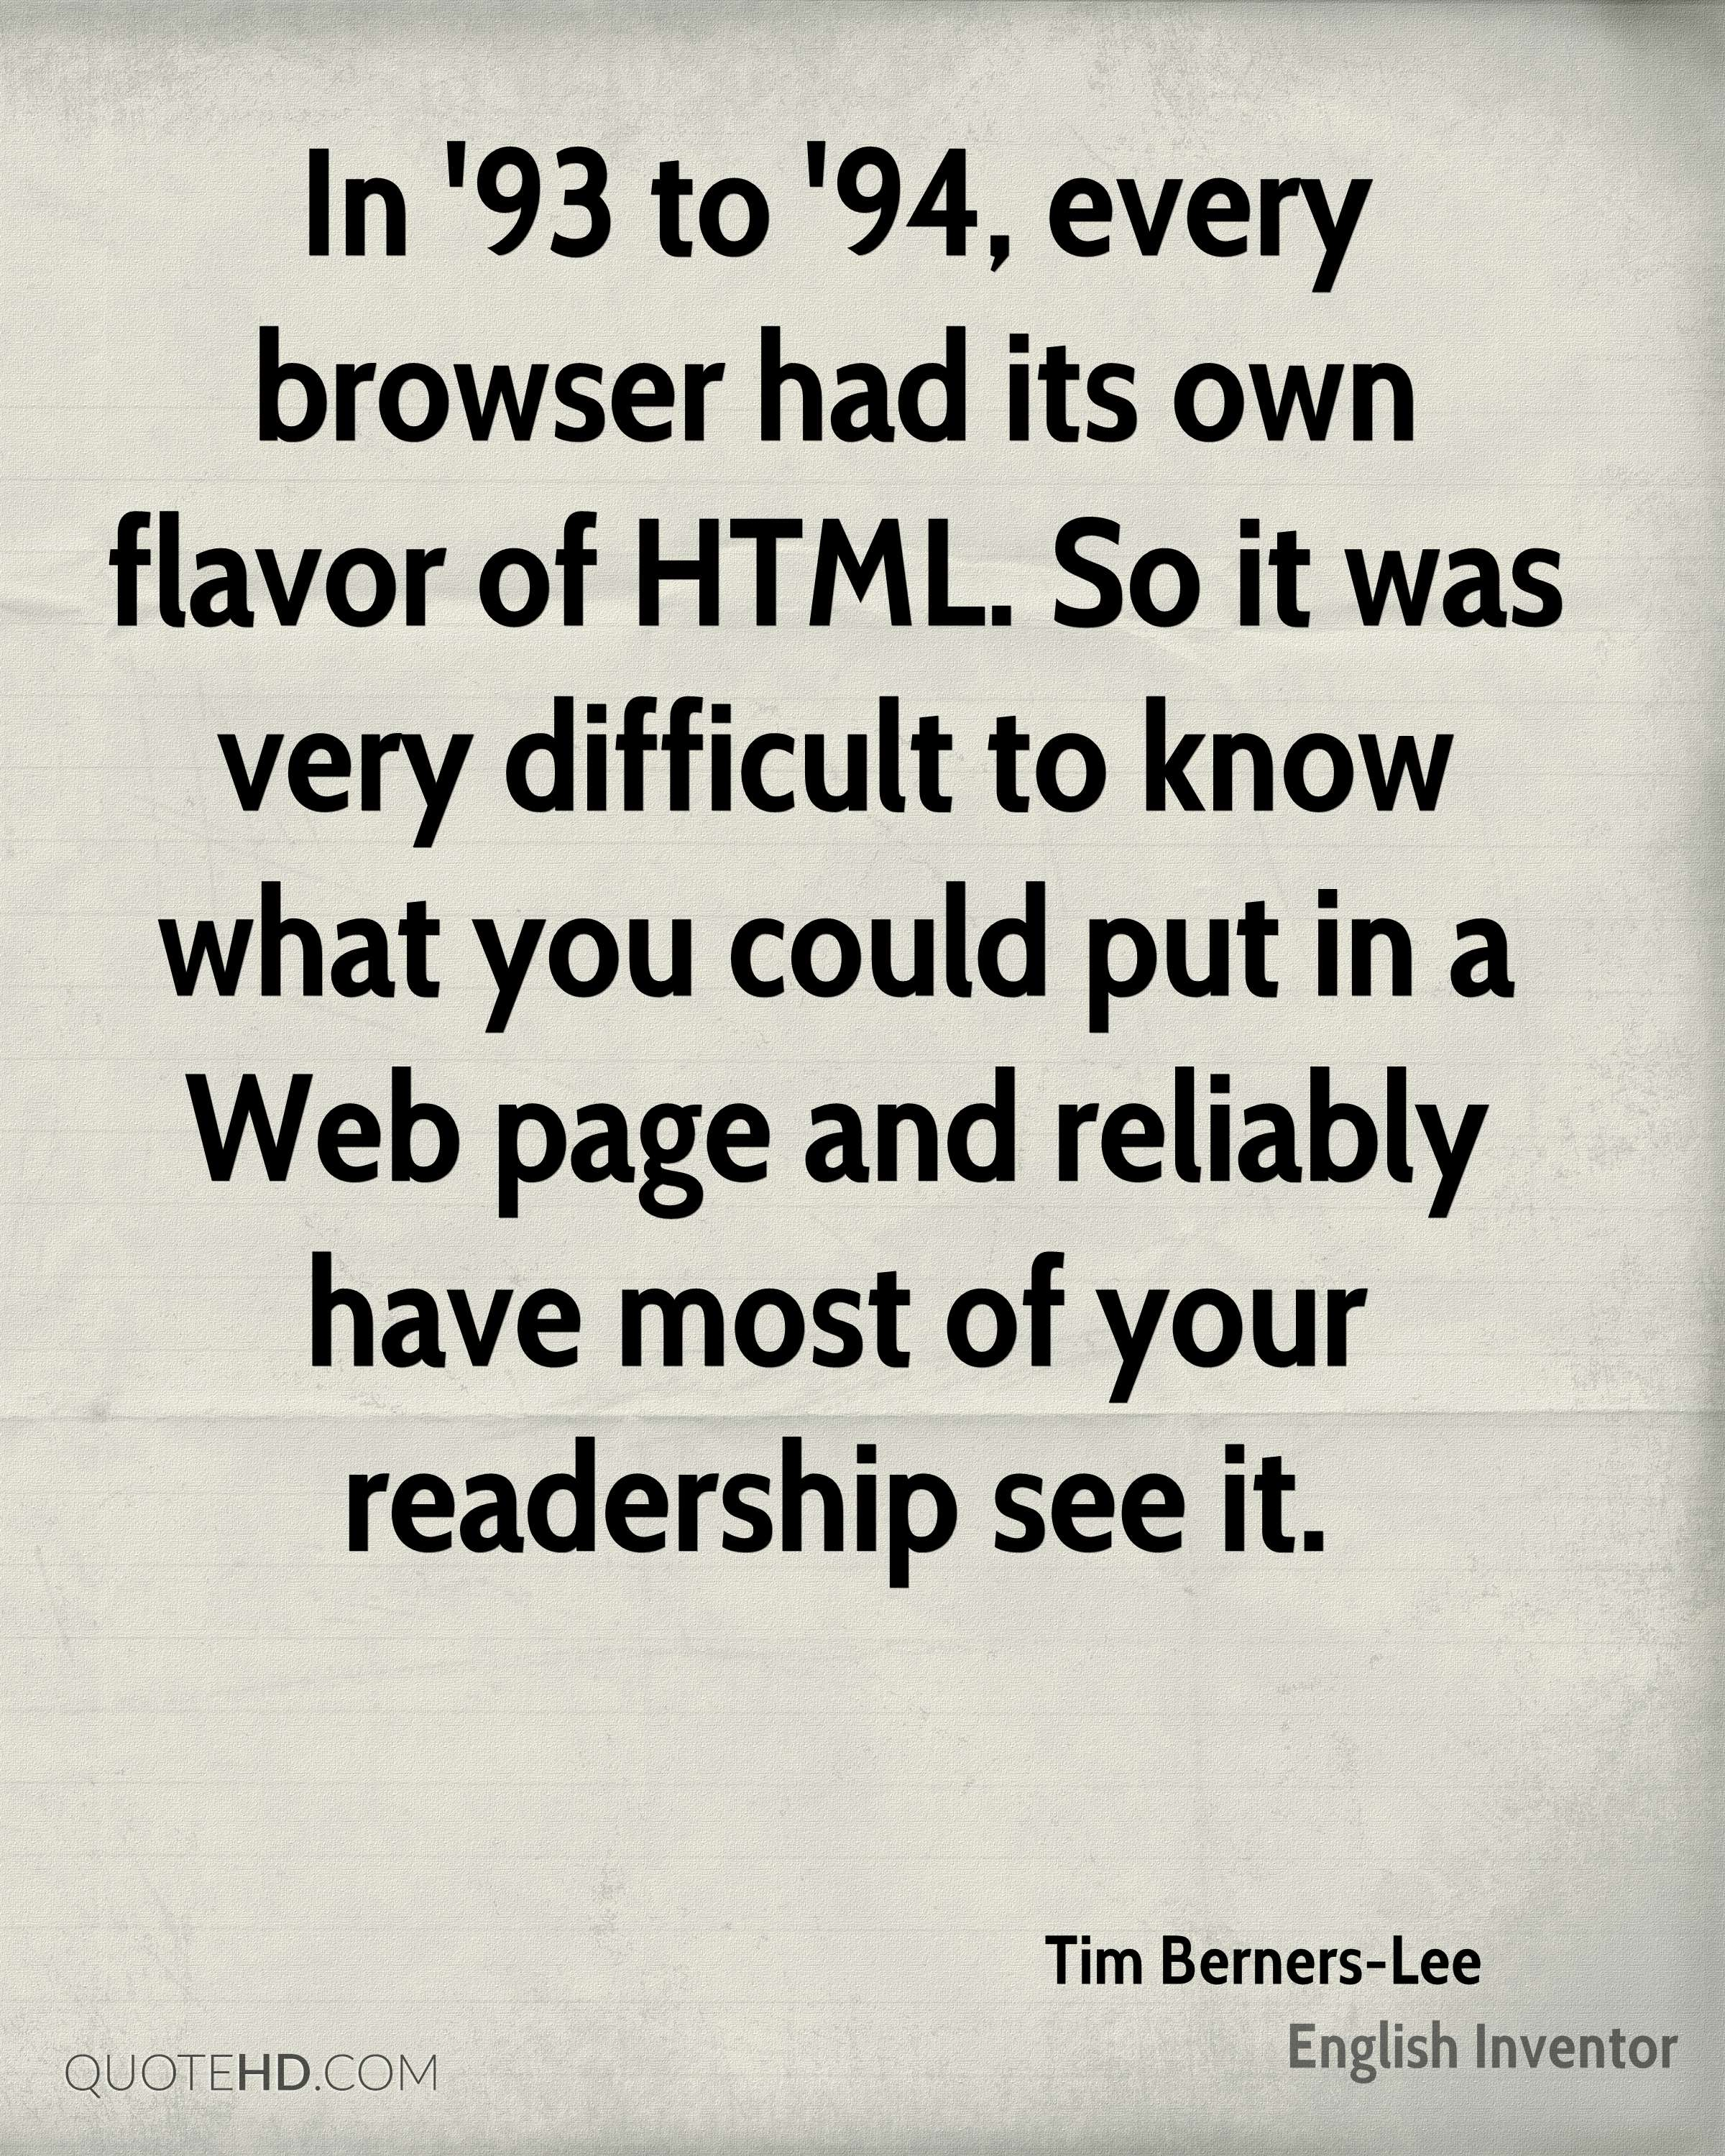 In '93 to '94, every browser had its own flavor of HTML. So it was very difficult to know what you could put in a Web page and reliably have most of your readership see it.